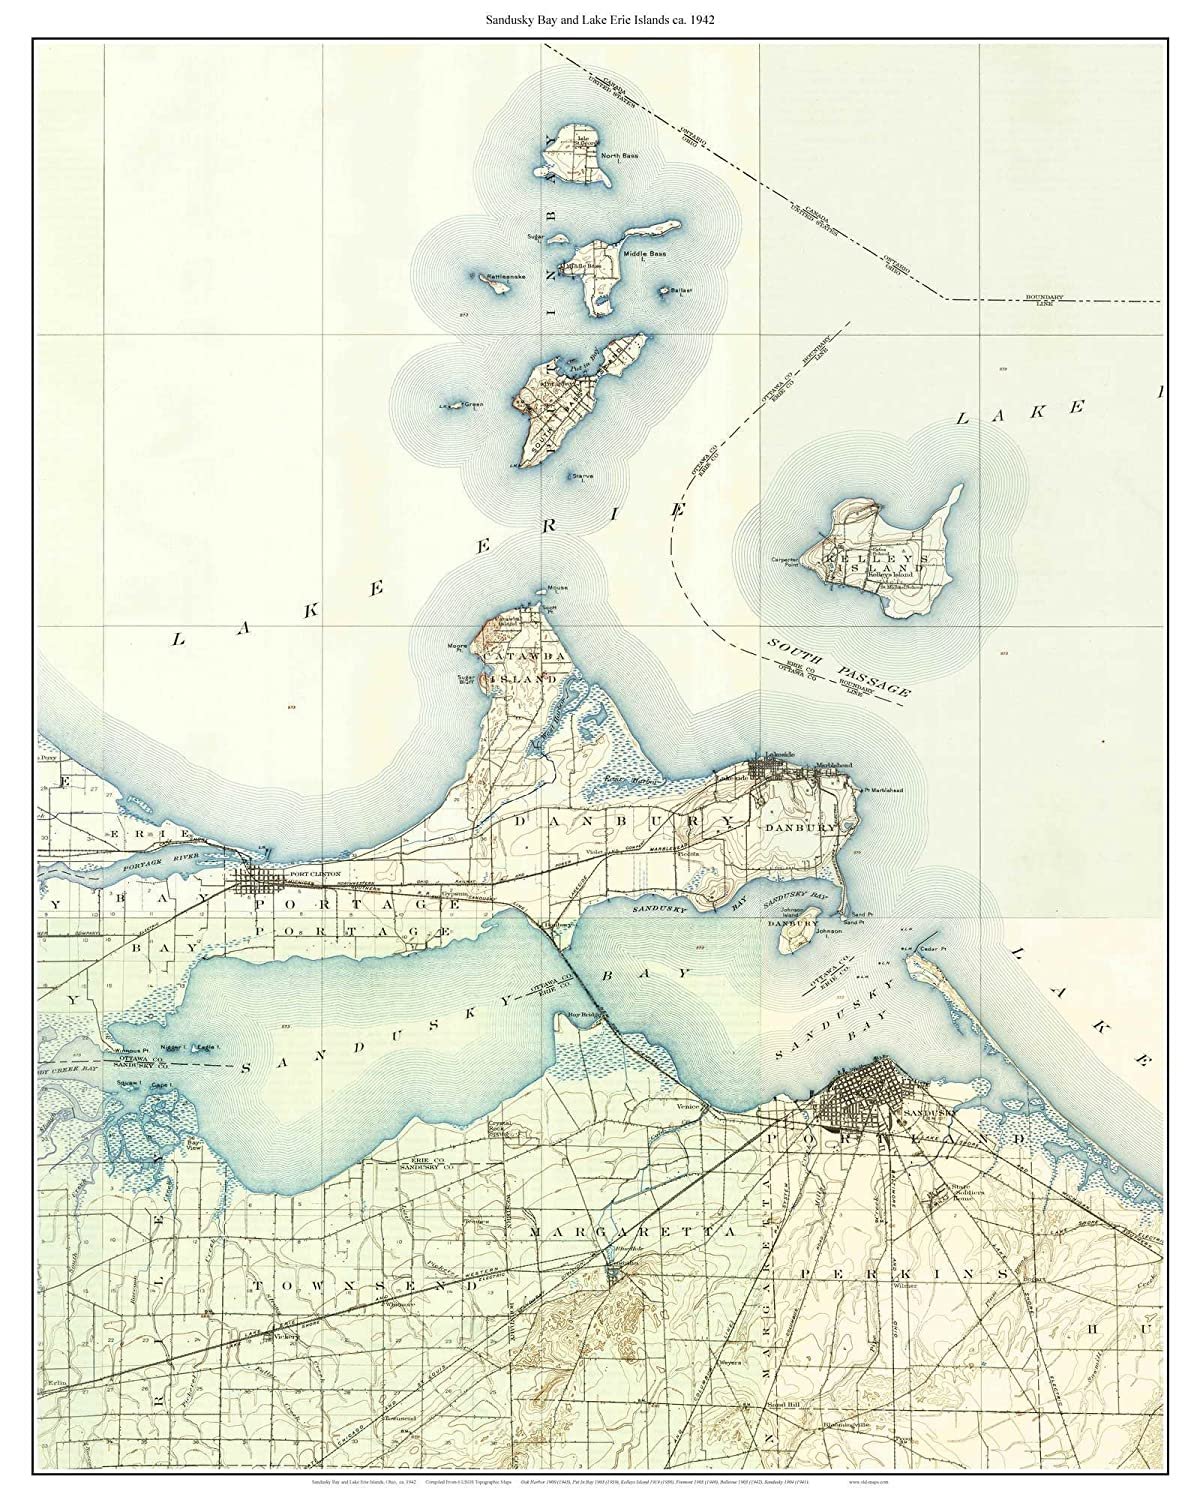 Amazon.com: Sandusky Bay and the Lake Erie Islands 1942 Old ... on broadview heights map, marlette map, cedar point map, davison township map, masury map, burney map, rose city map, luna pier map, south vienna map, holmes map, new phila map, elida map, pickerington map, ohio map, st. ignace map, salem center map, jones valley map, west geauga map, cedartown map, blacklick map,